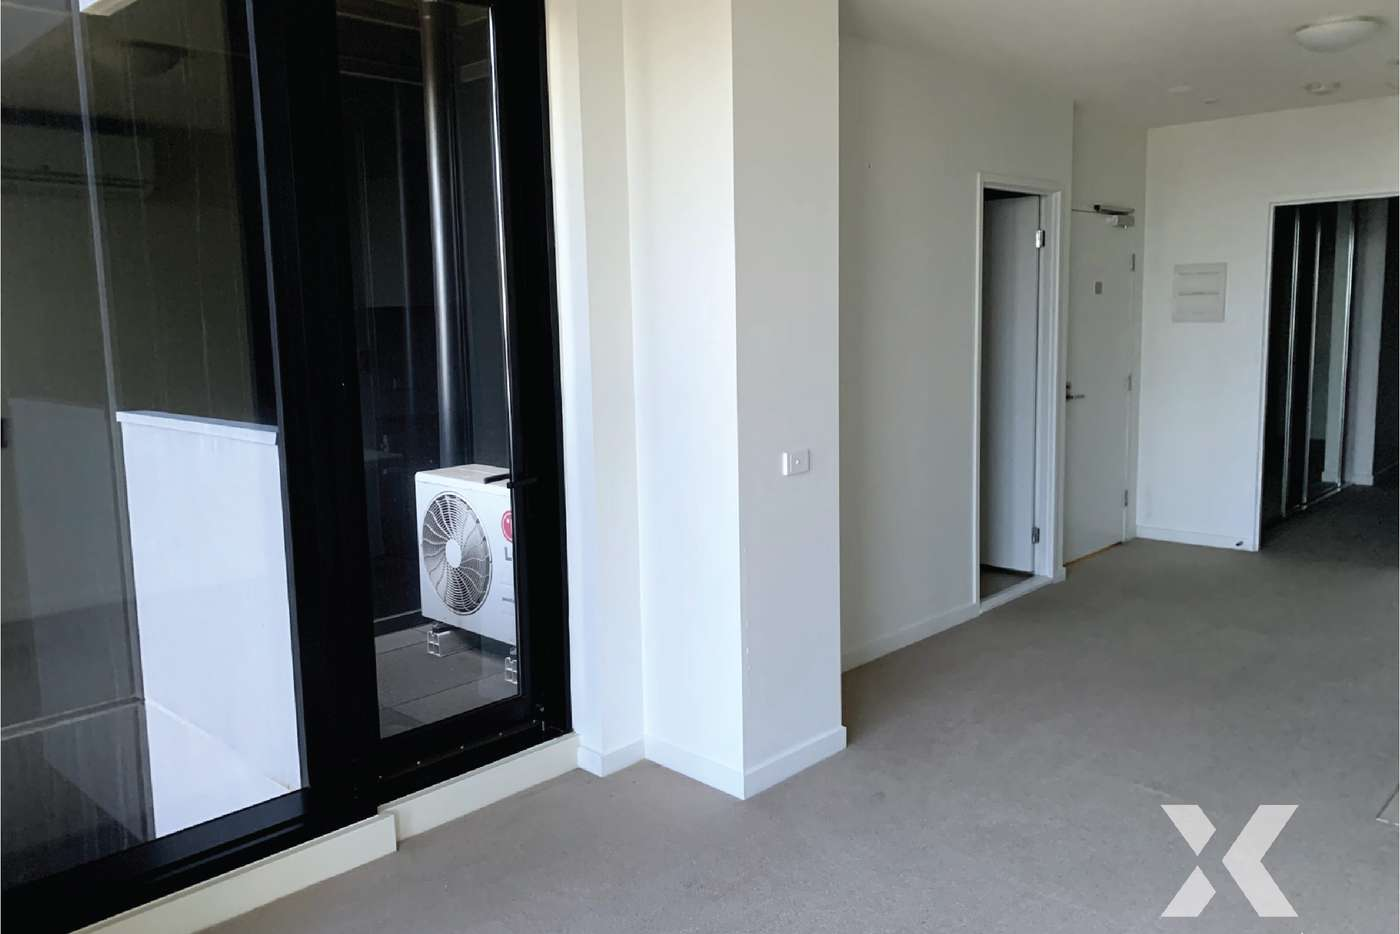 Main view of Homely apartment listing, 5006/568 Collins Street, Melbourne VIC 3000